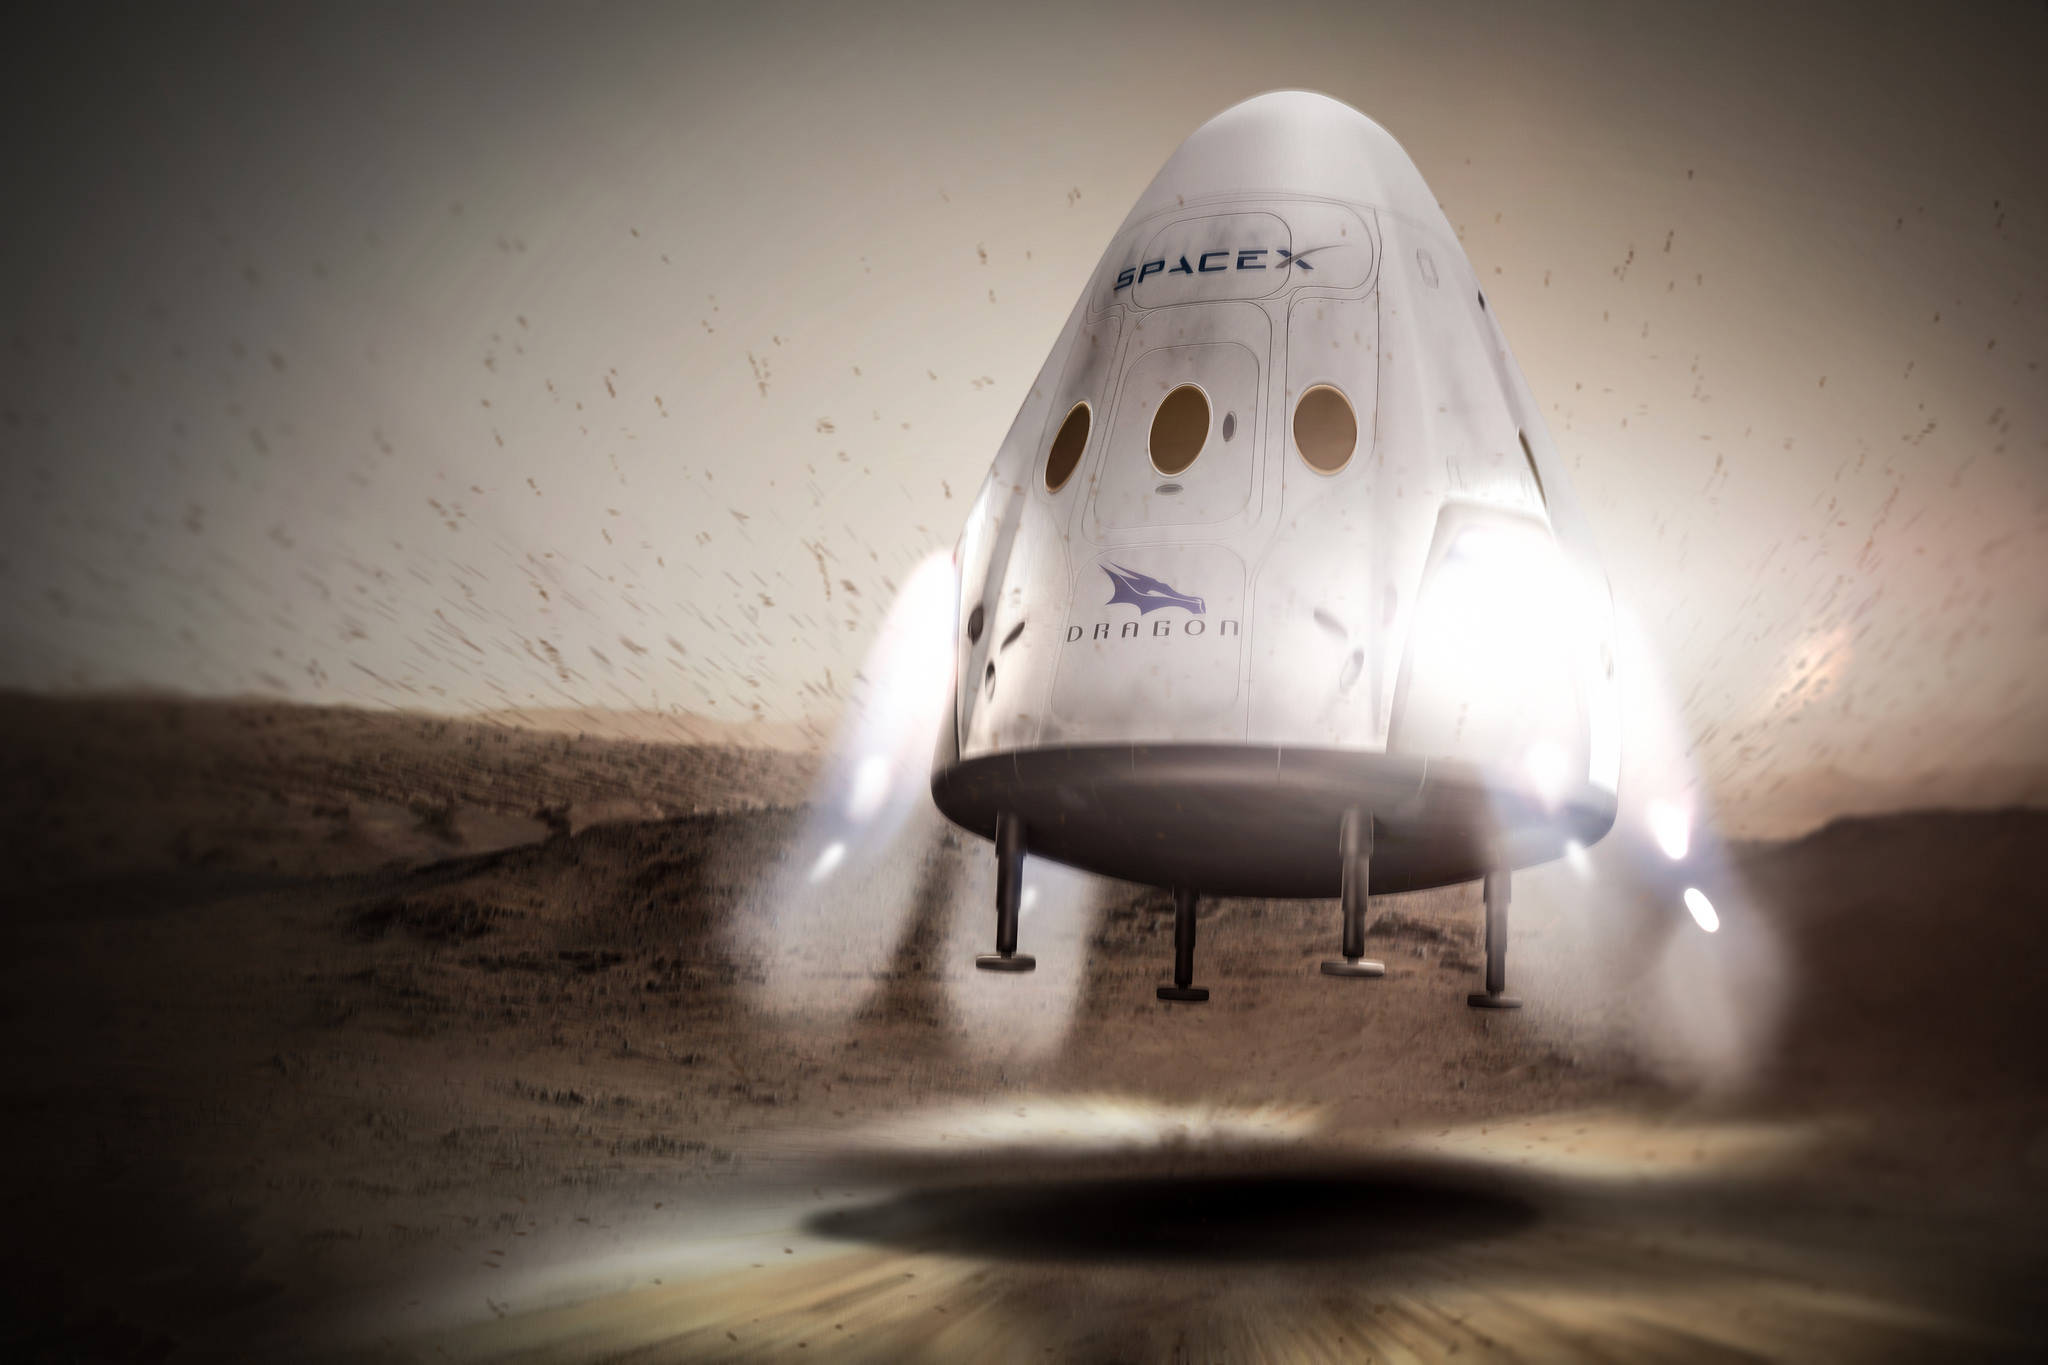 SpaceX Will Launch Private Mars Missions as Soon as 2018